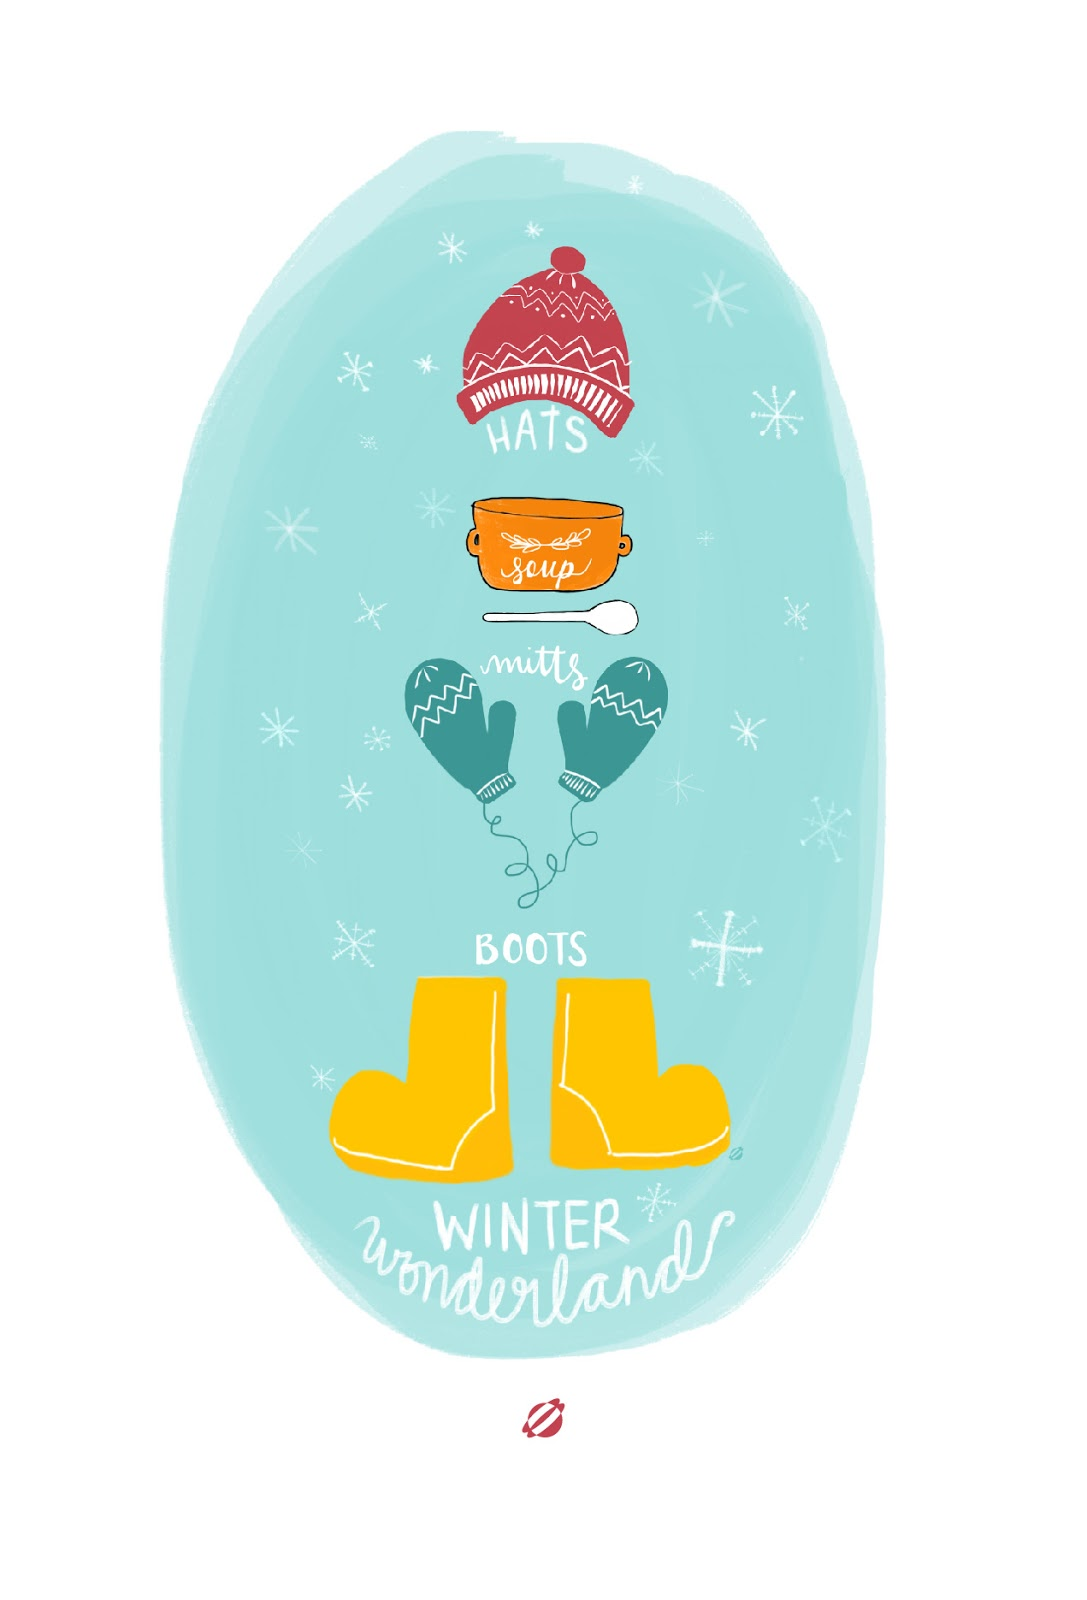 LostBumblebee ©2014 MDBN - Winter Wonderland : Hats, Soup, Mitts, Boots! Free Printable : PERSONAL USE ONLY